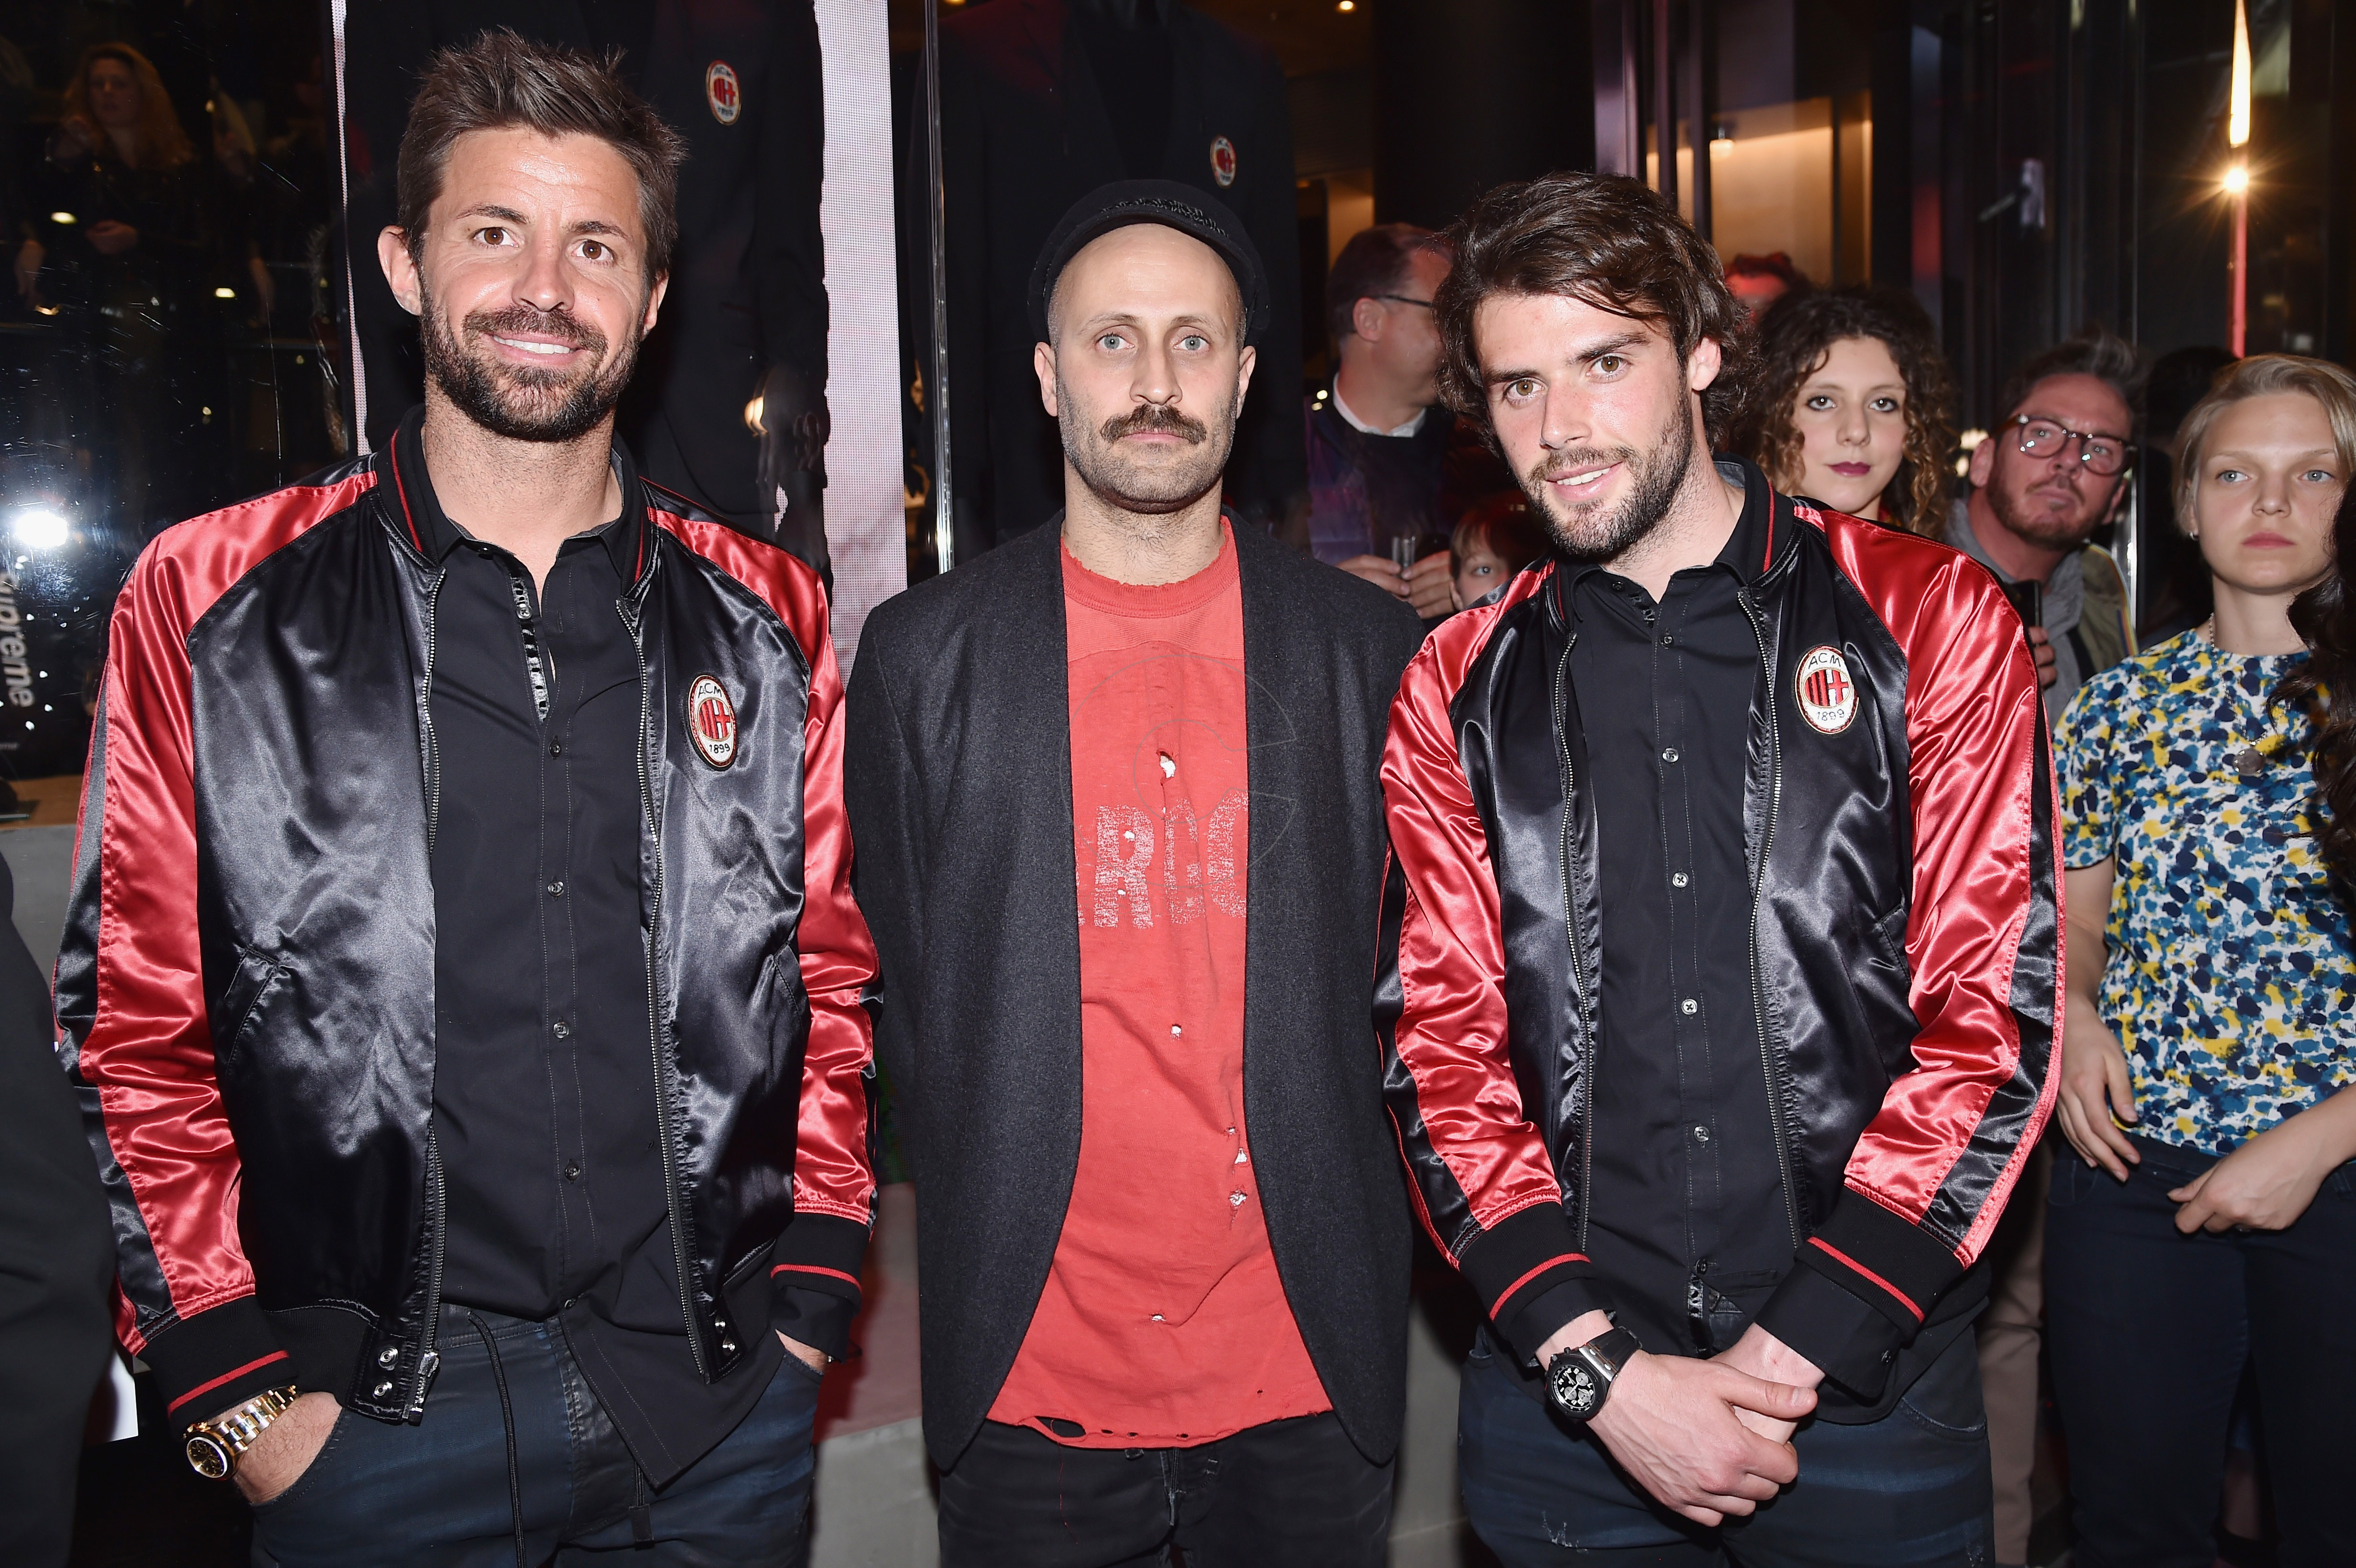 MILAN, ITALY - MARCH 14: Marco Storari, Andrea Rosso and Andrea Poli attend The New Bomber Presentation at the Diesel Store on March 14, 2017 in Milan, Italy. (Photo by Jacopo Raule/Getty Images for Diesel)